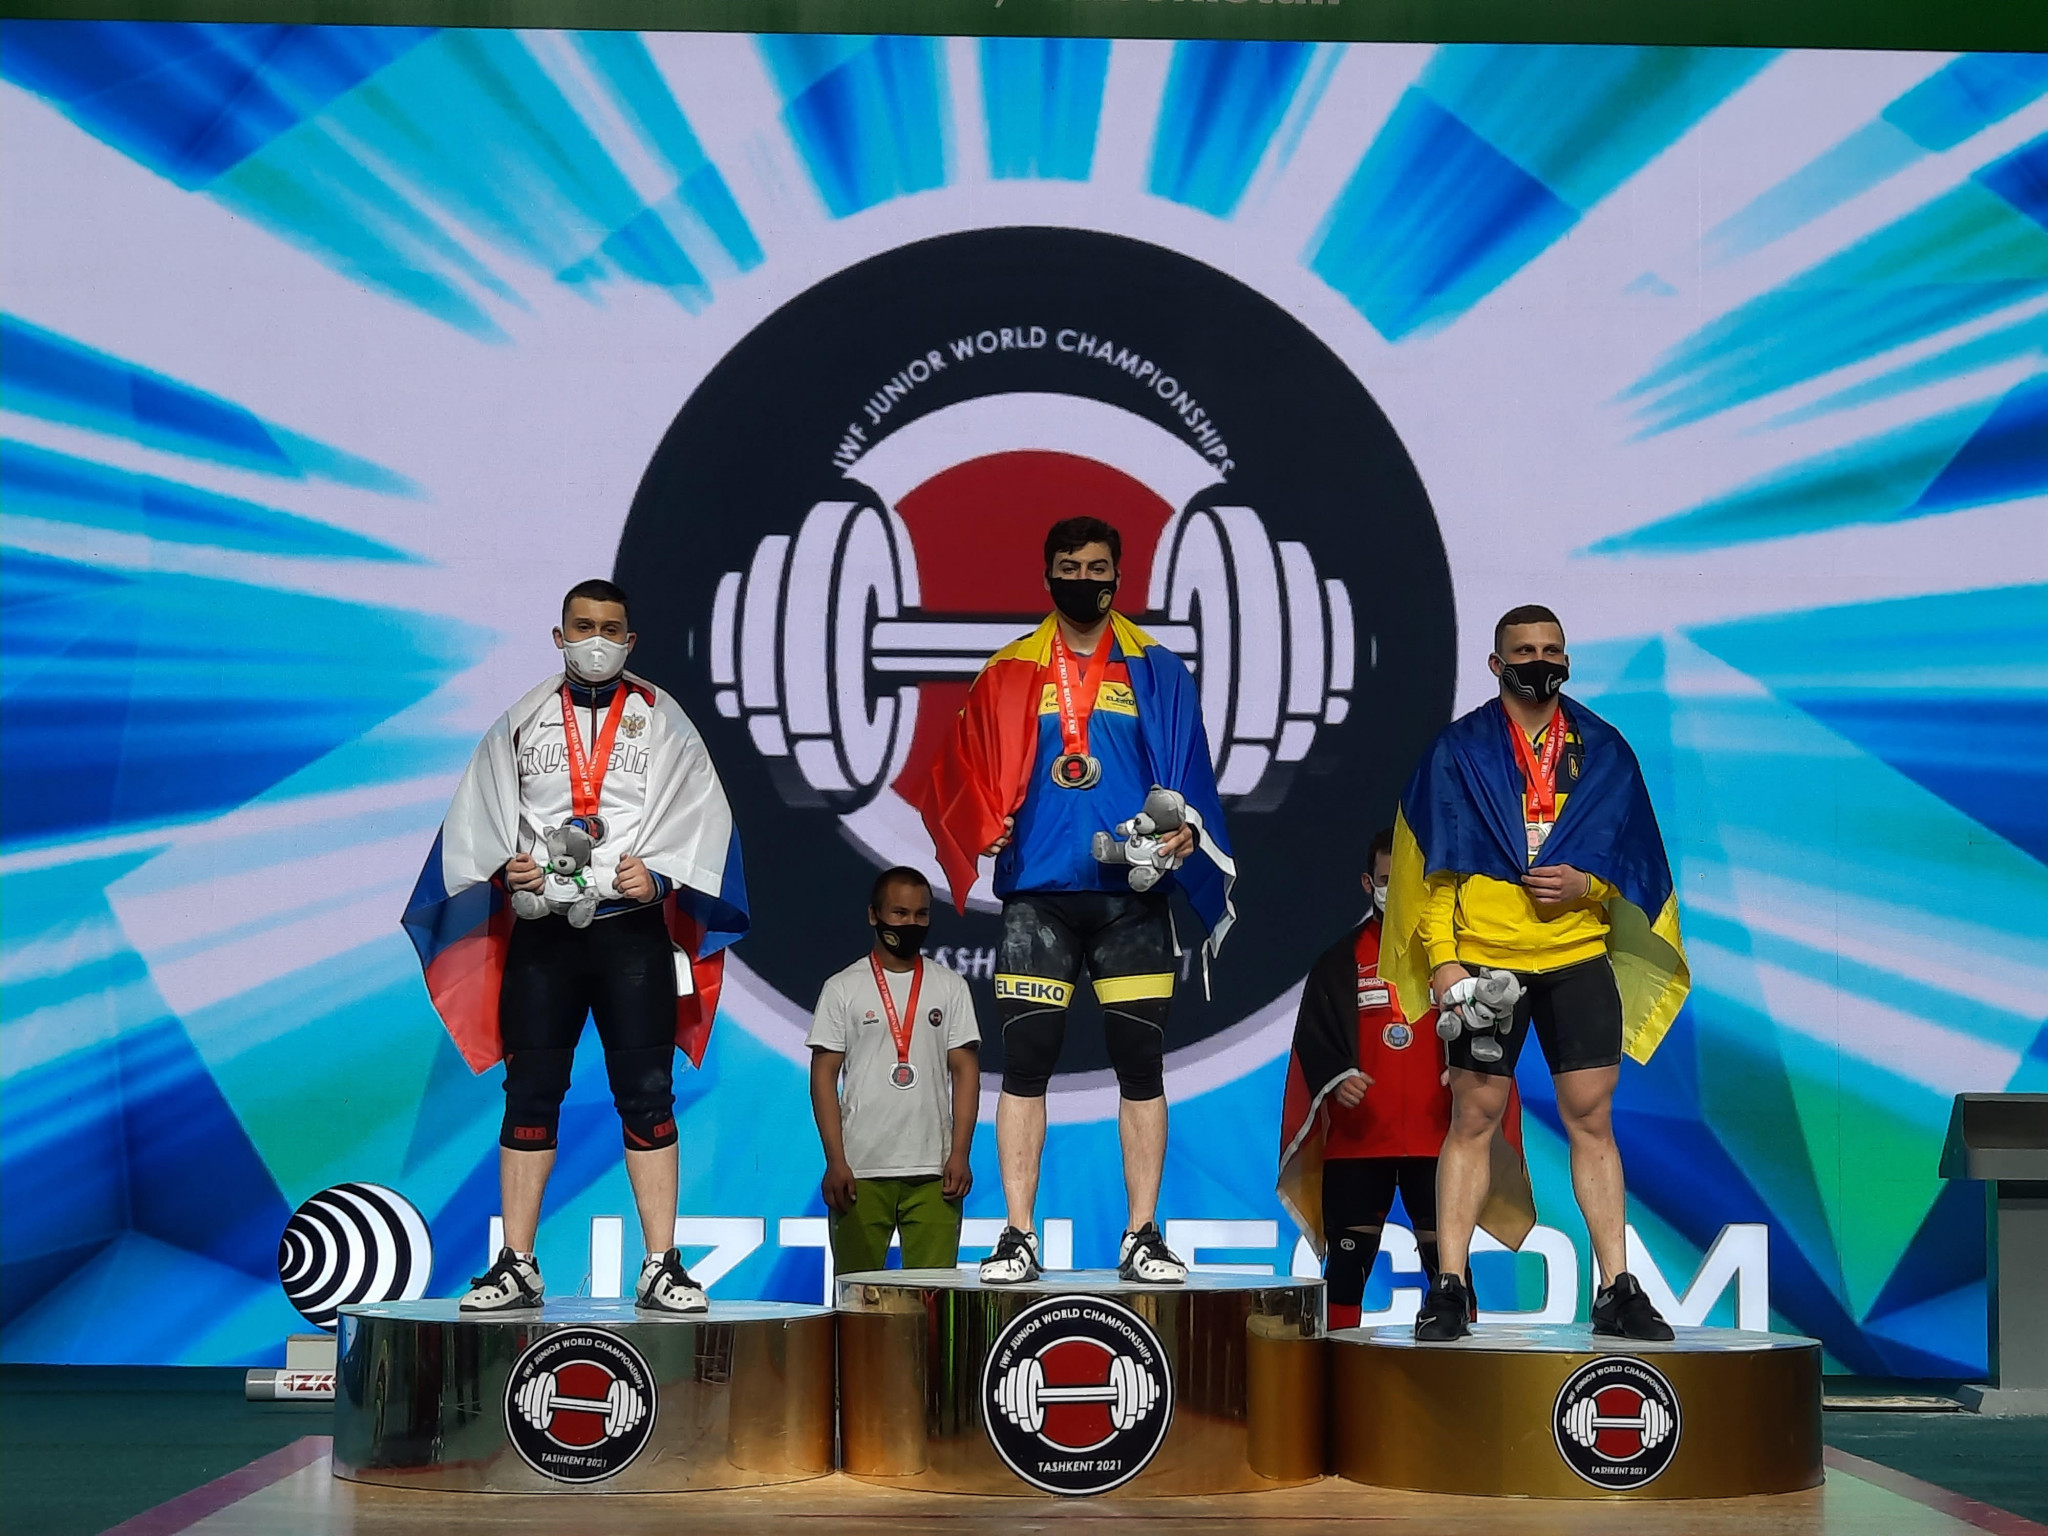 Weightlifting glory for Russia and Moldova at Junior World Championships